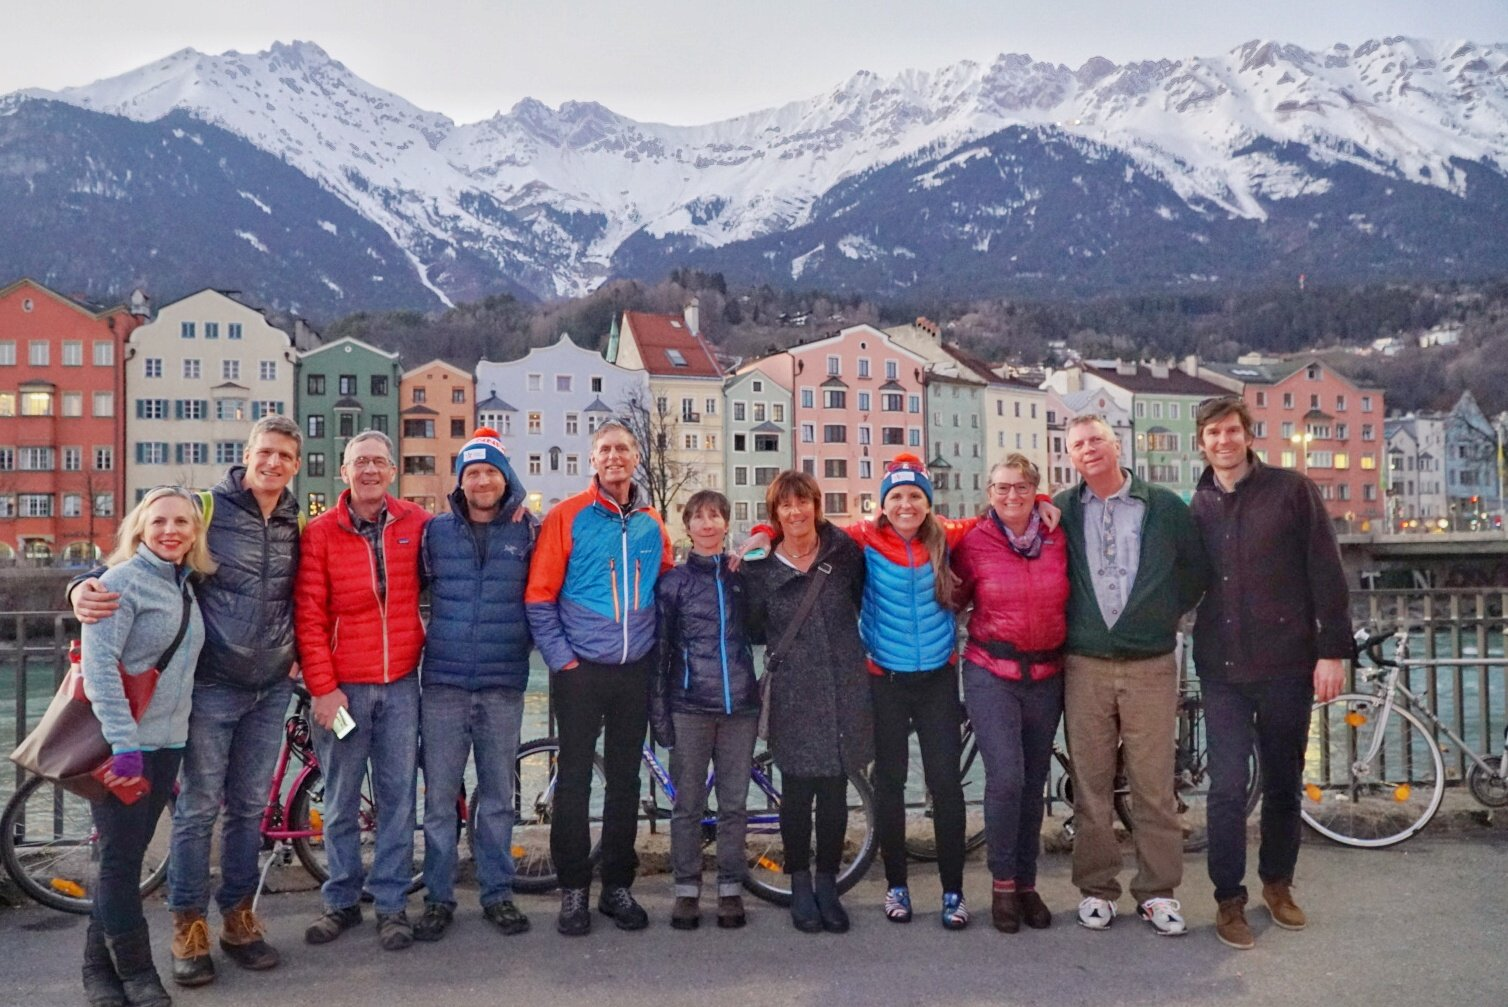 Skiers take some time away from the race trails to explore the Olympic city of Innsbruck, Austria.